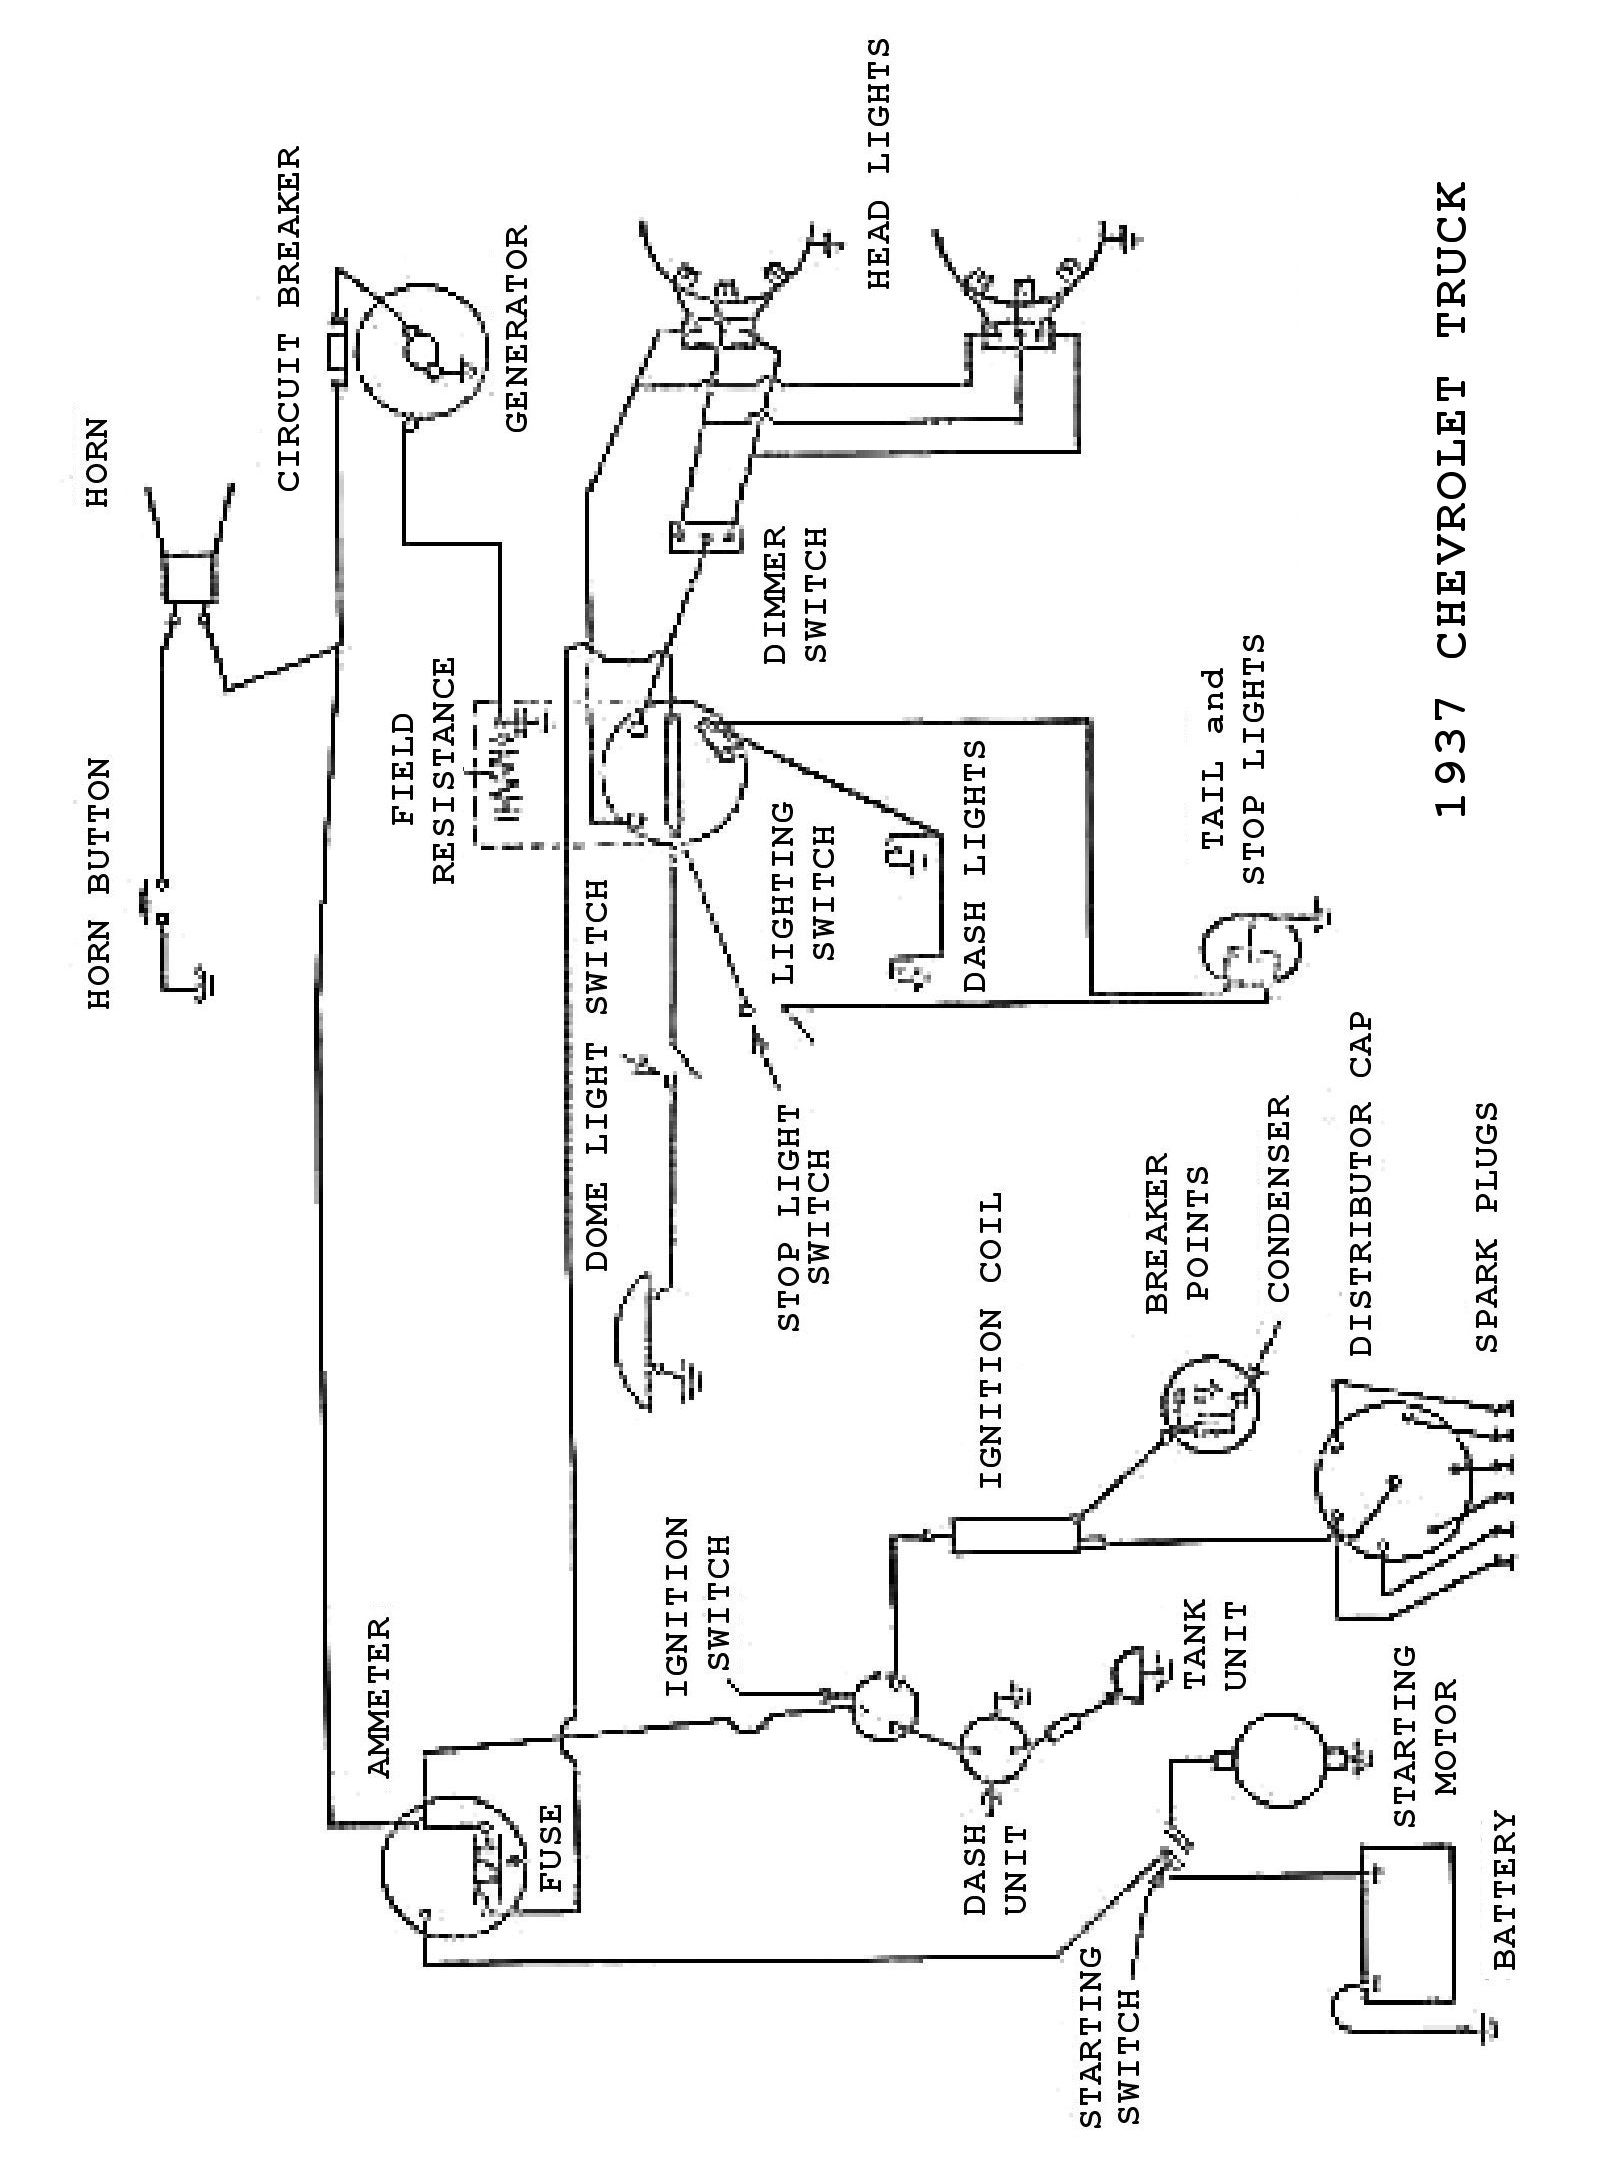 37truck chevy truck wiring diagram 87 chevy truck wiring diagram \u2022 wiring 1955 Chevy Headlight Wiring Diagram at reclaimingppi.co